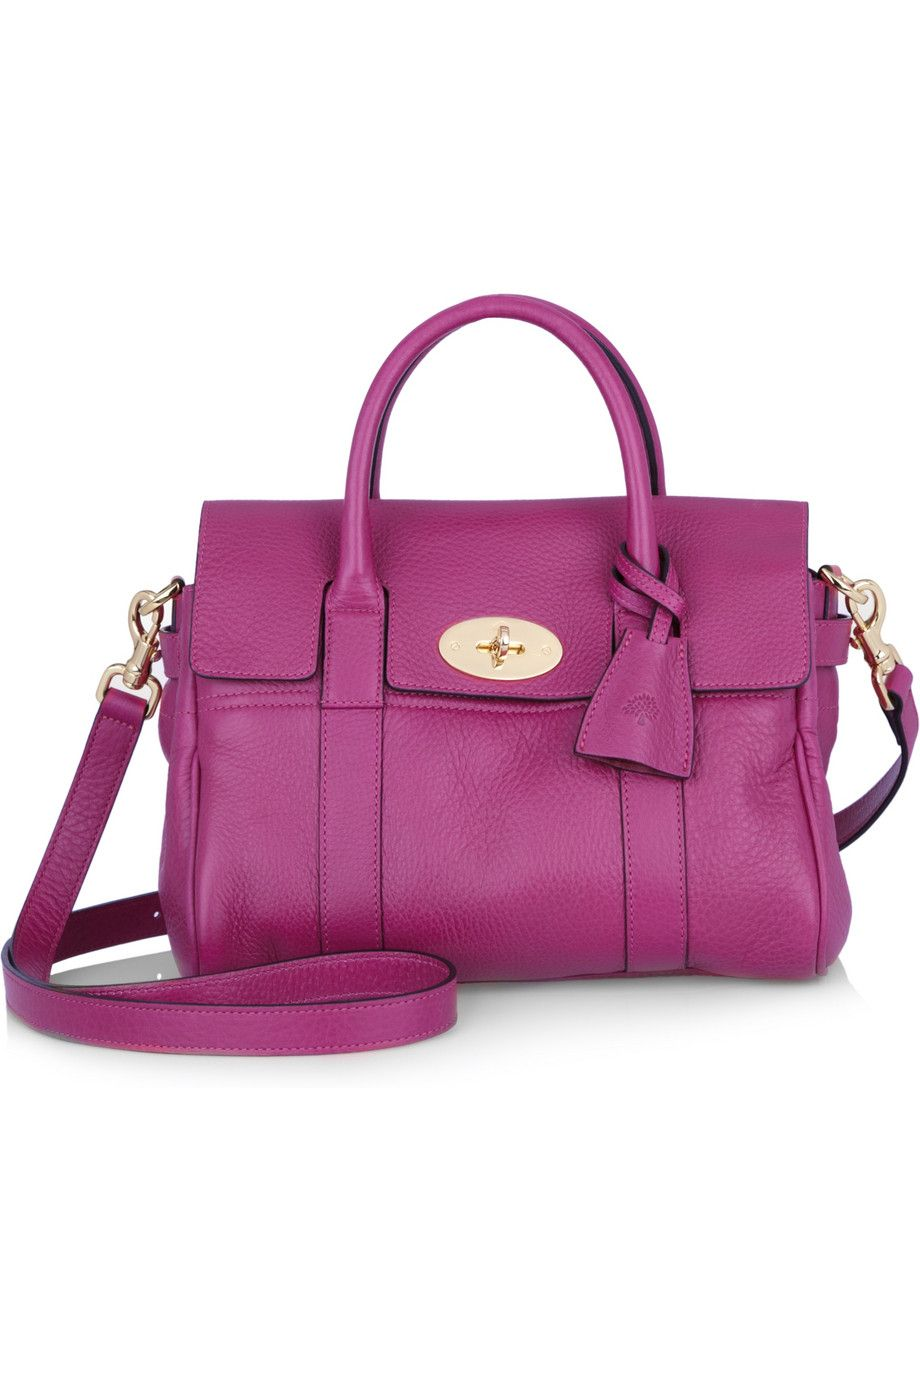 29d759dd5b83 Mulberry Bayswater textured leather shoulder bag     will never afford lol